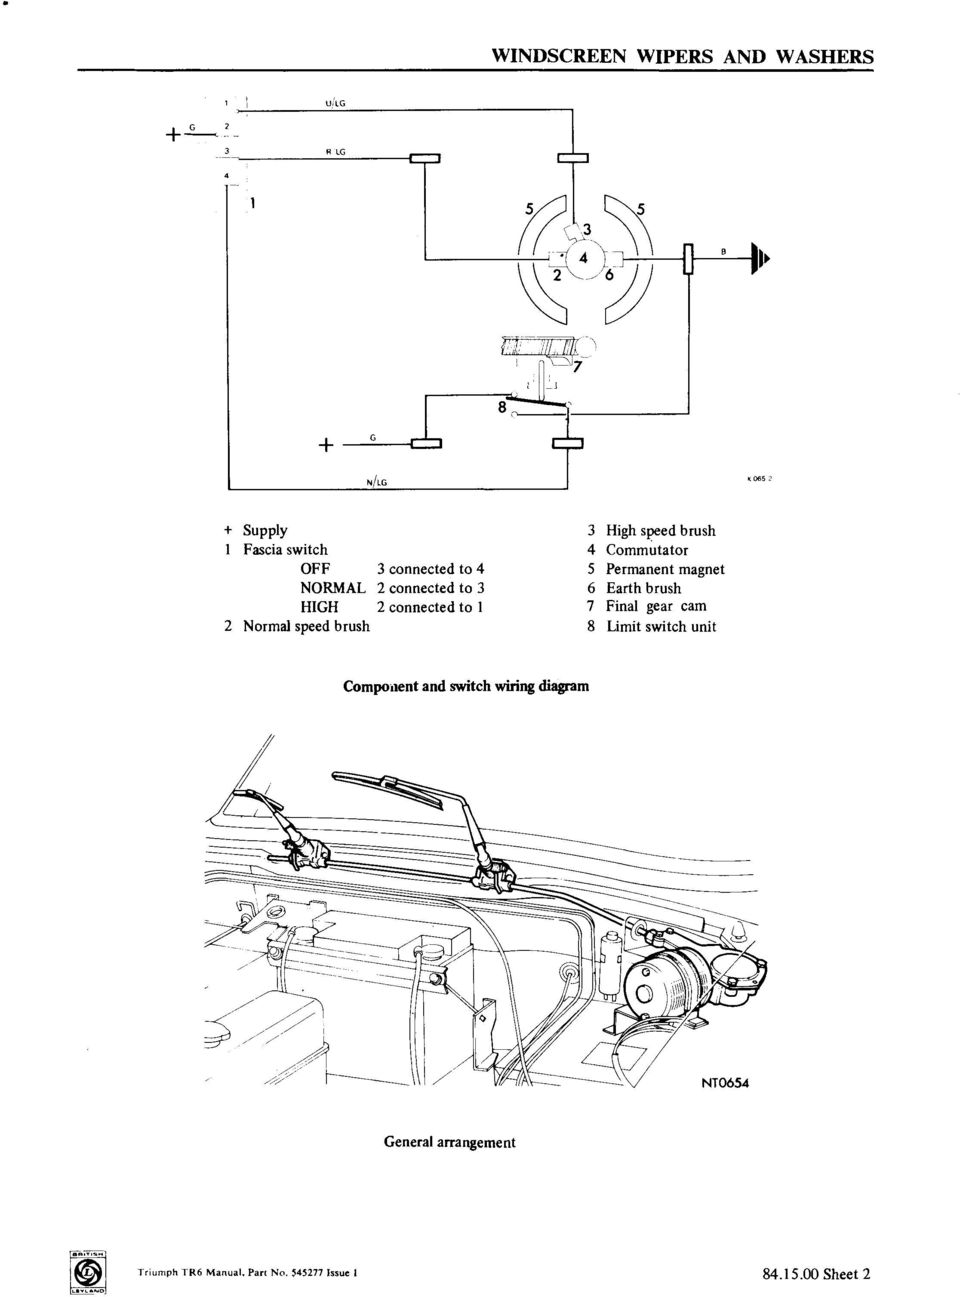 Windscreen Wipers And Washers Operations Pdf 76 Triumph Tr6 Wiring Diagram Connected To 1 7 Final Gear Cam 2 Normal Speed Brush 8 Limit Switch Unit Compo